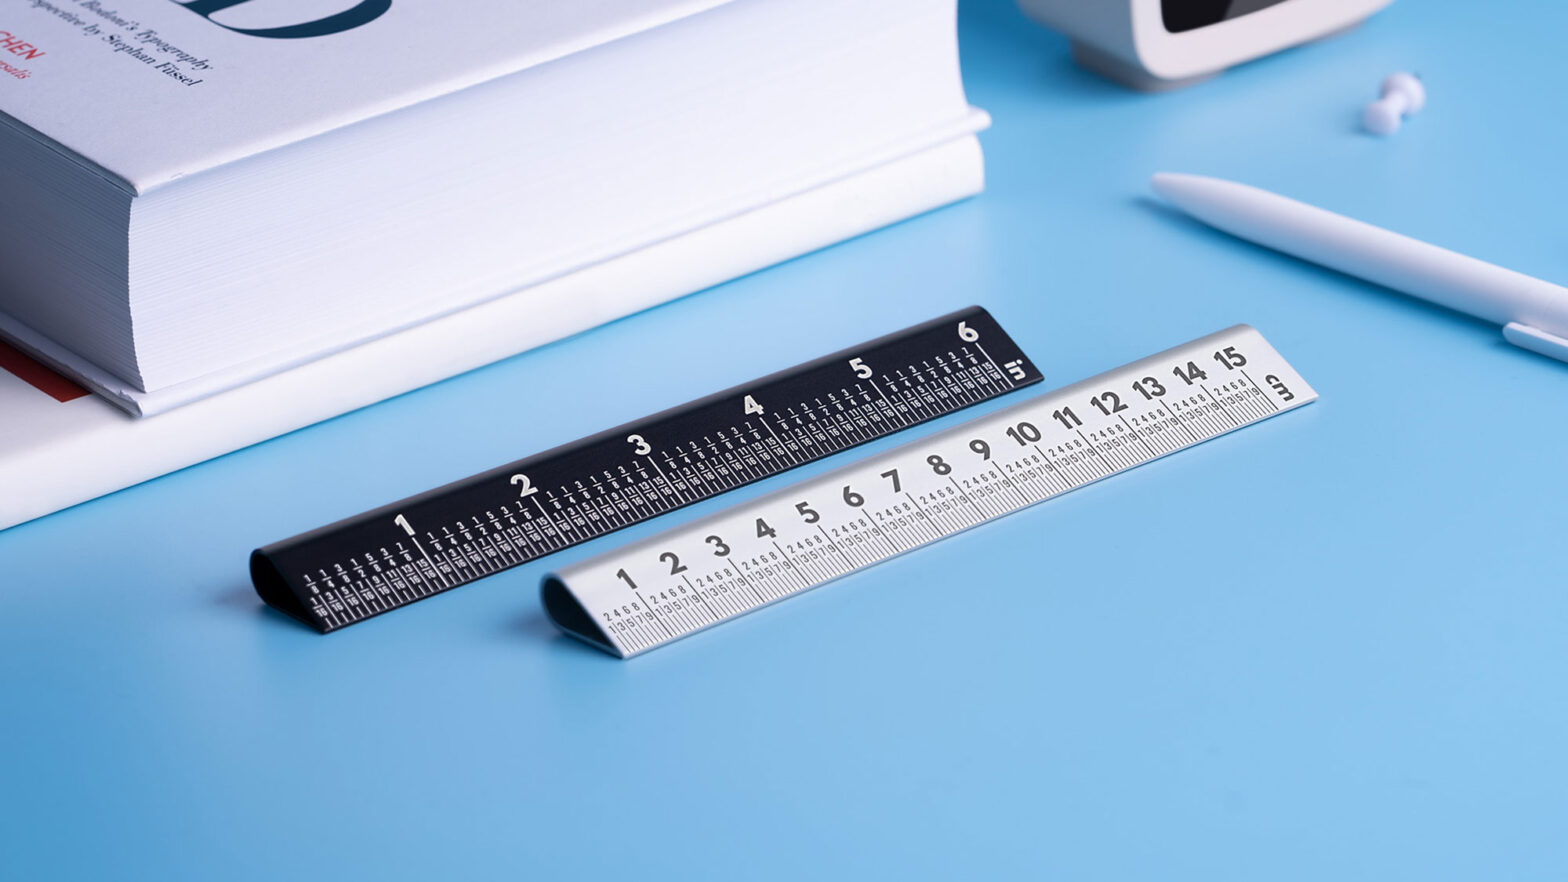 30-degree Ruler 4.0 by Orangered Life Kickstarter